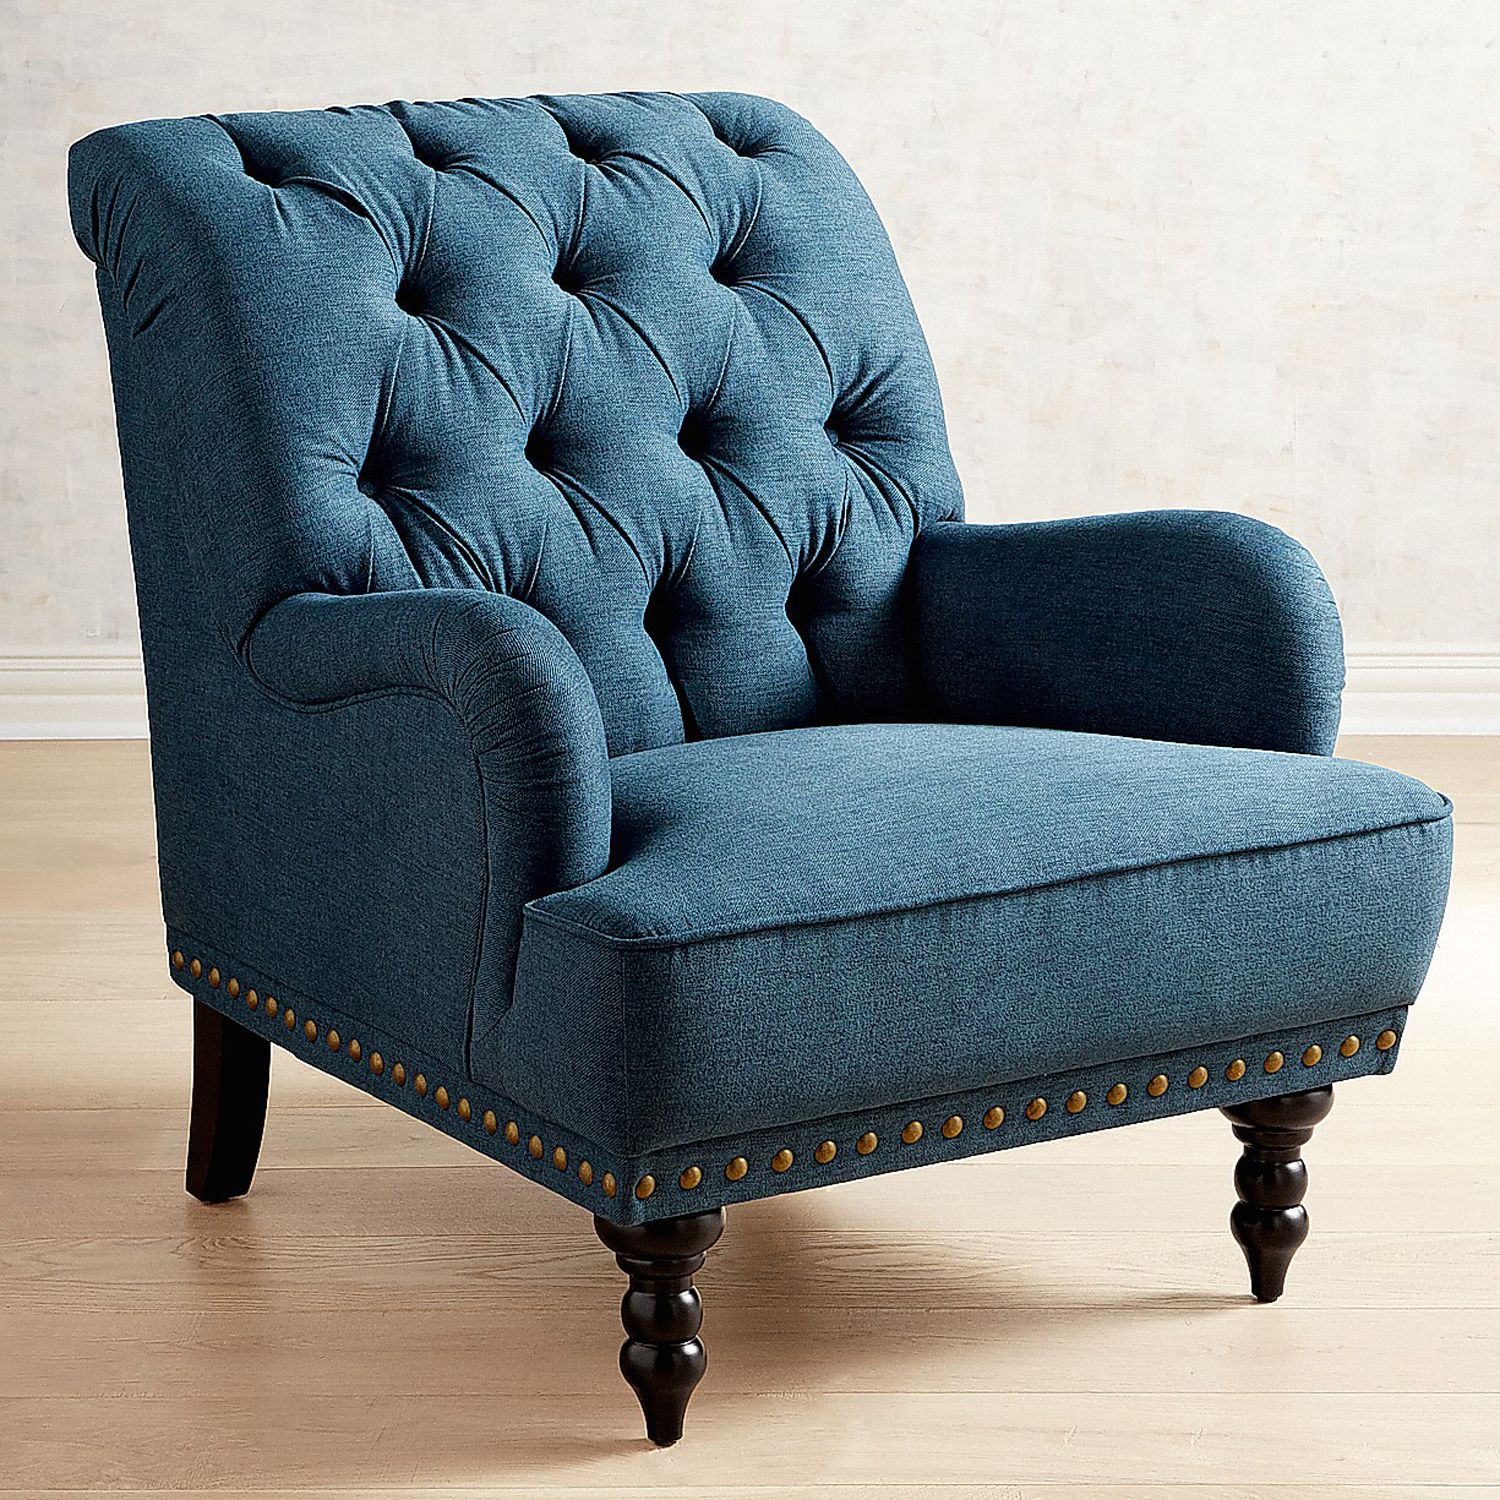 Chas Pierformance™ Twill Baltic Blue Armchair | Pier 1